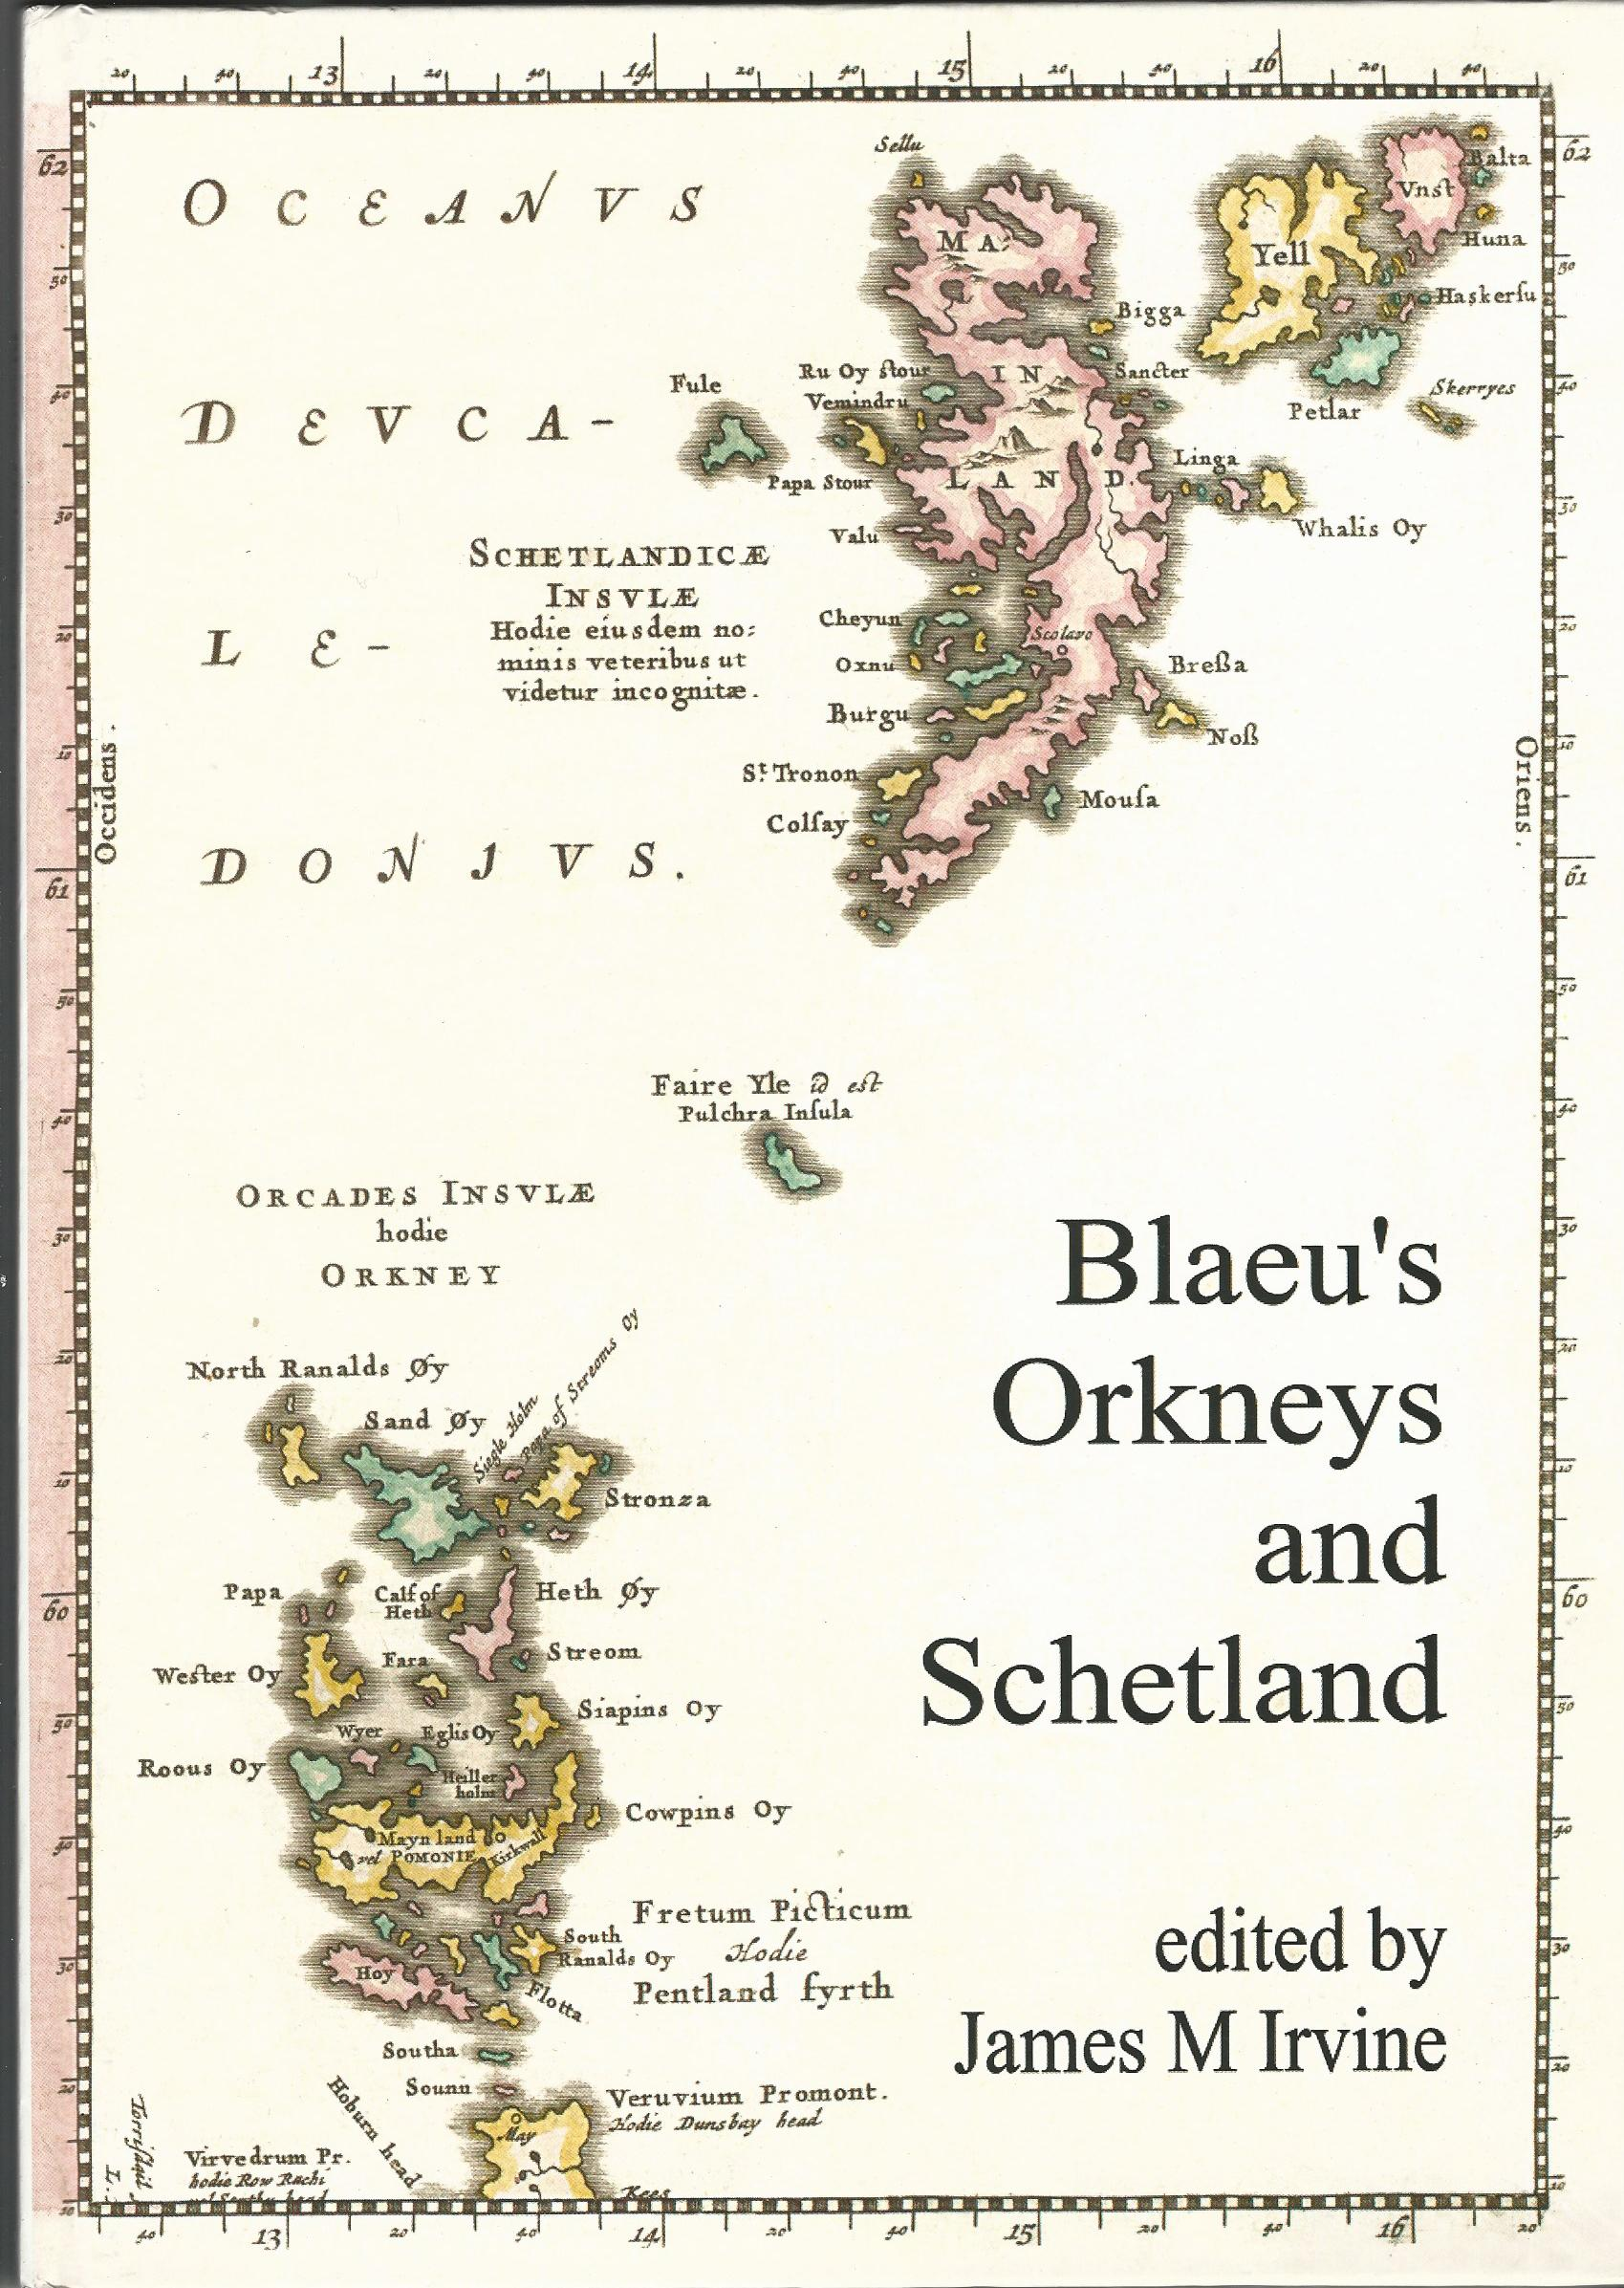 Image for Blaeu's Orkneys and Schetland: The Orkneys and Schetland in Blaeu's Atlas of 1654